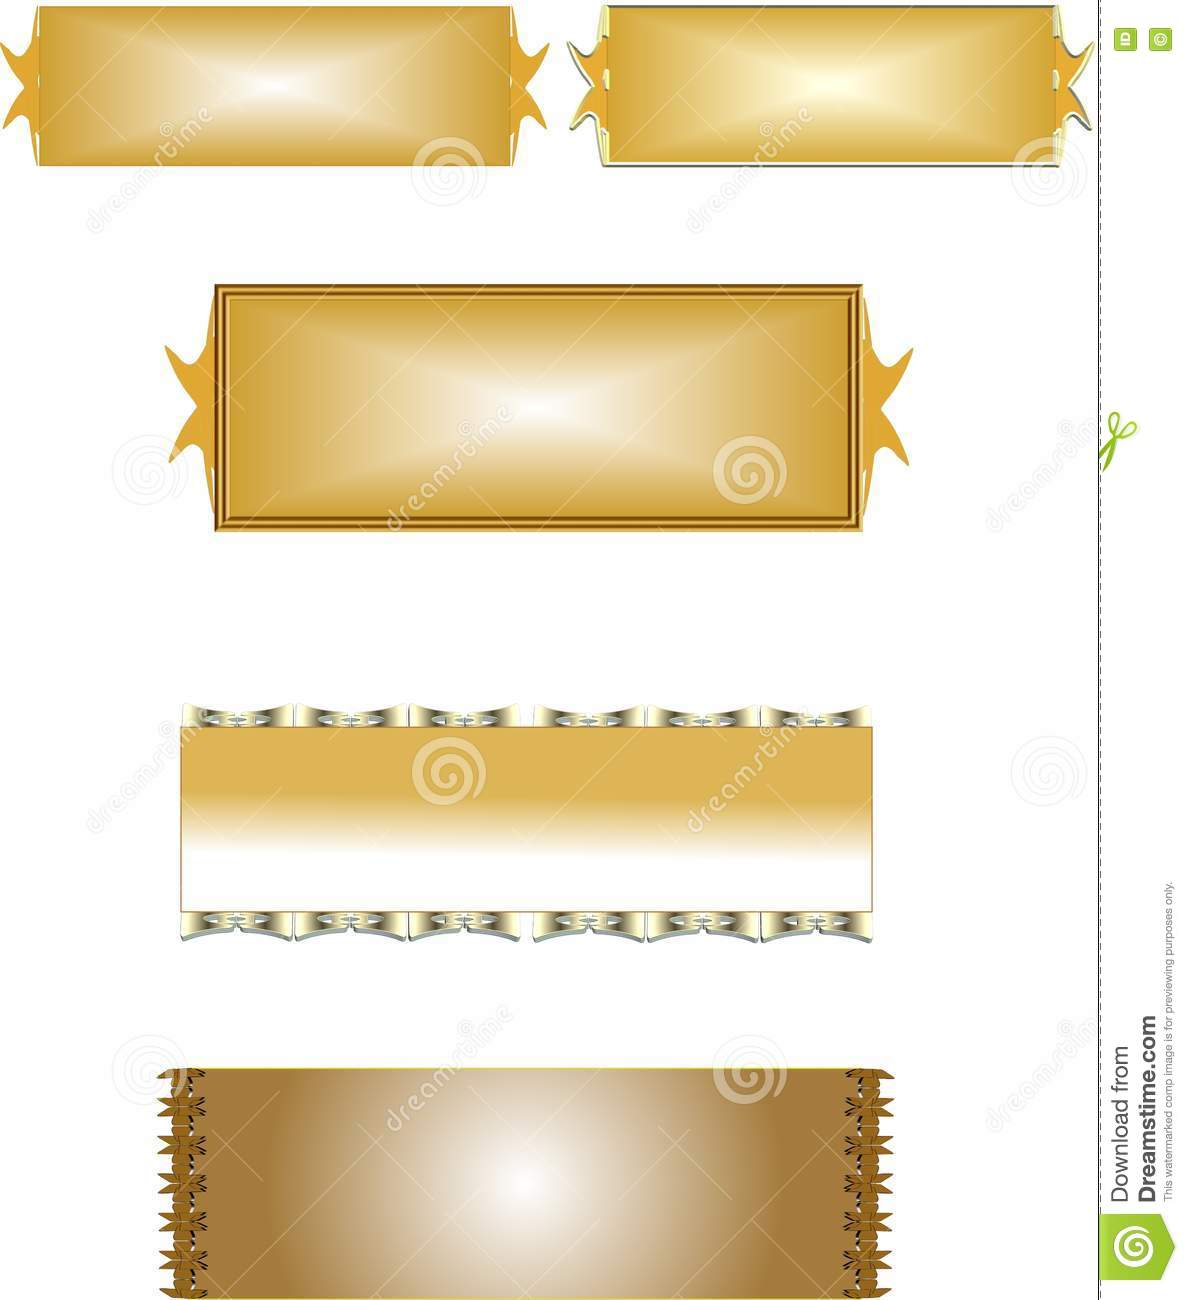 Brass Name Plates Royalty Free Stock Images Image 19105109